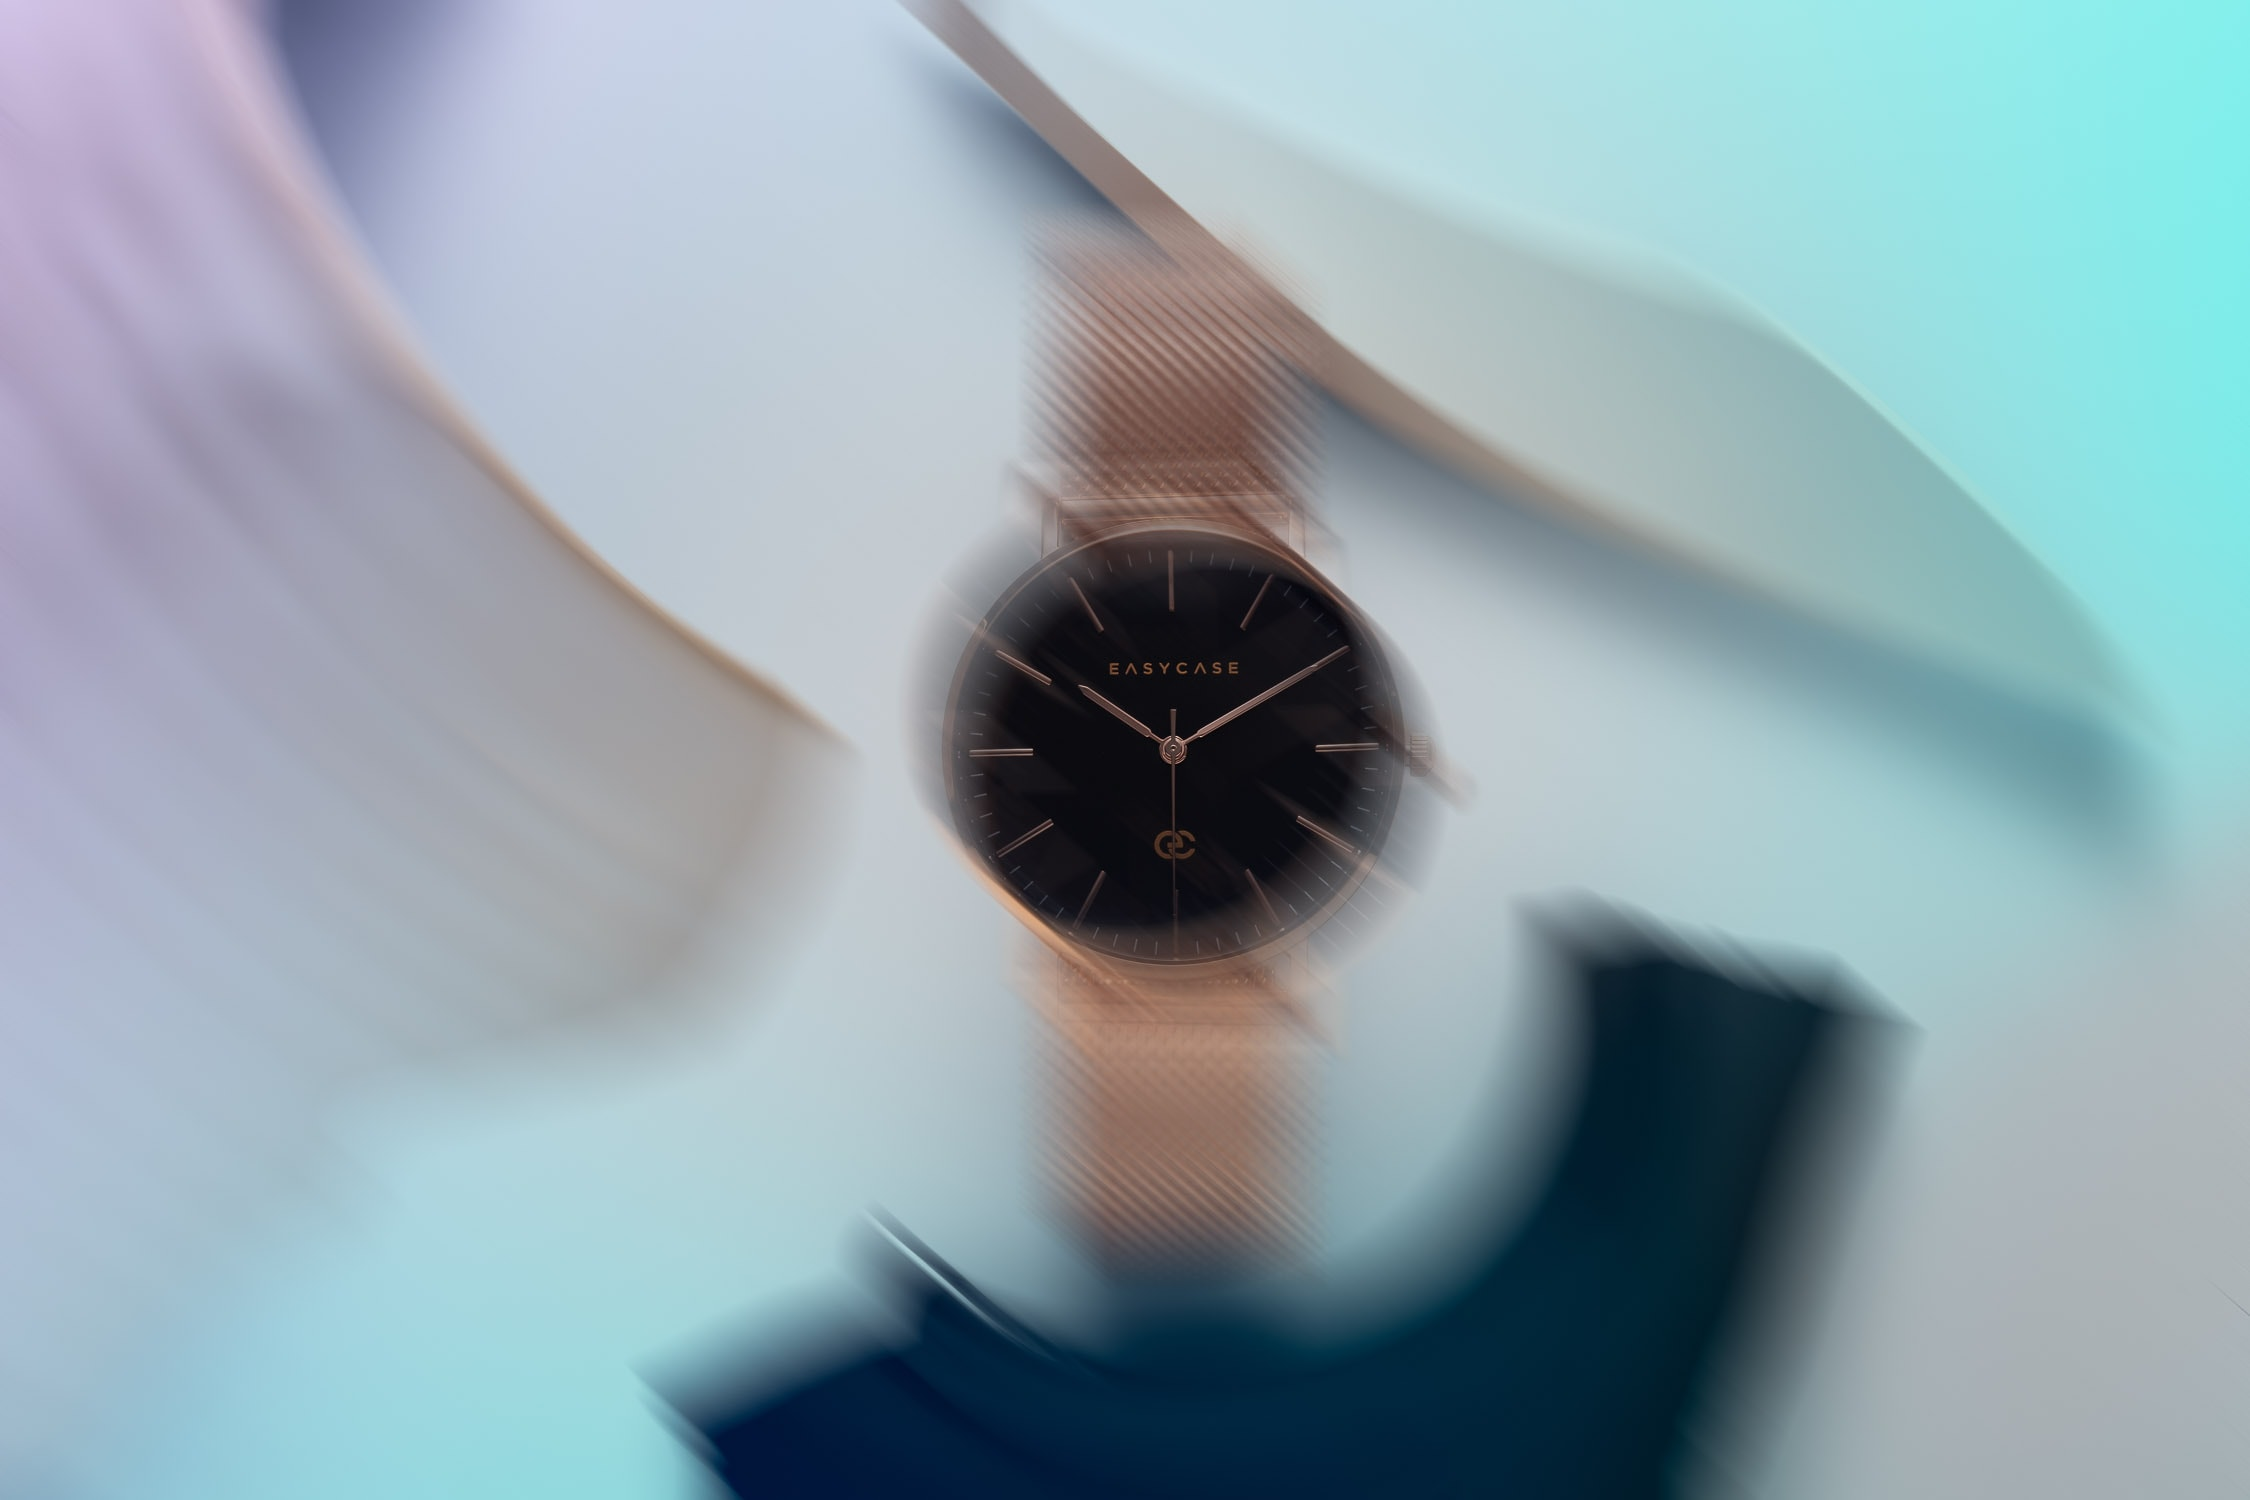 Creative watch photography for Easycase